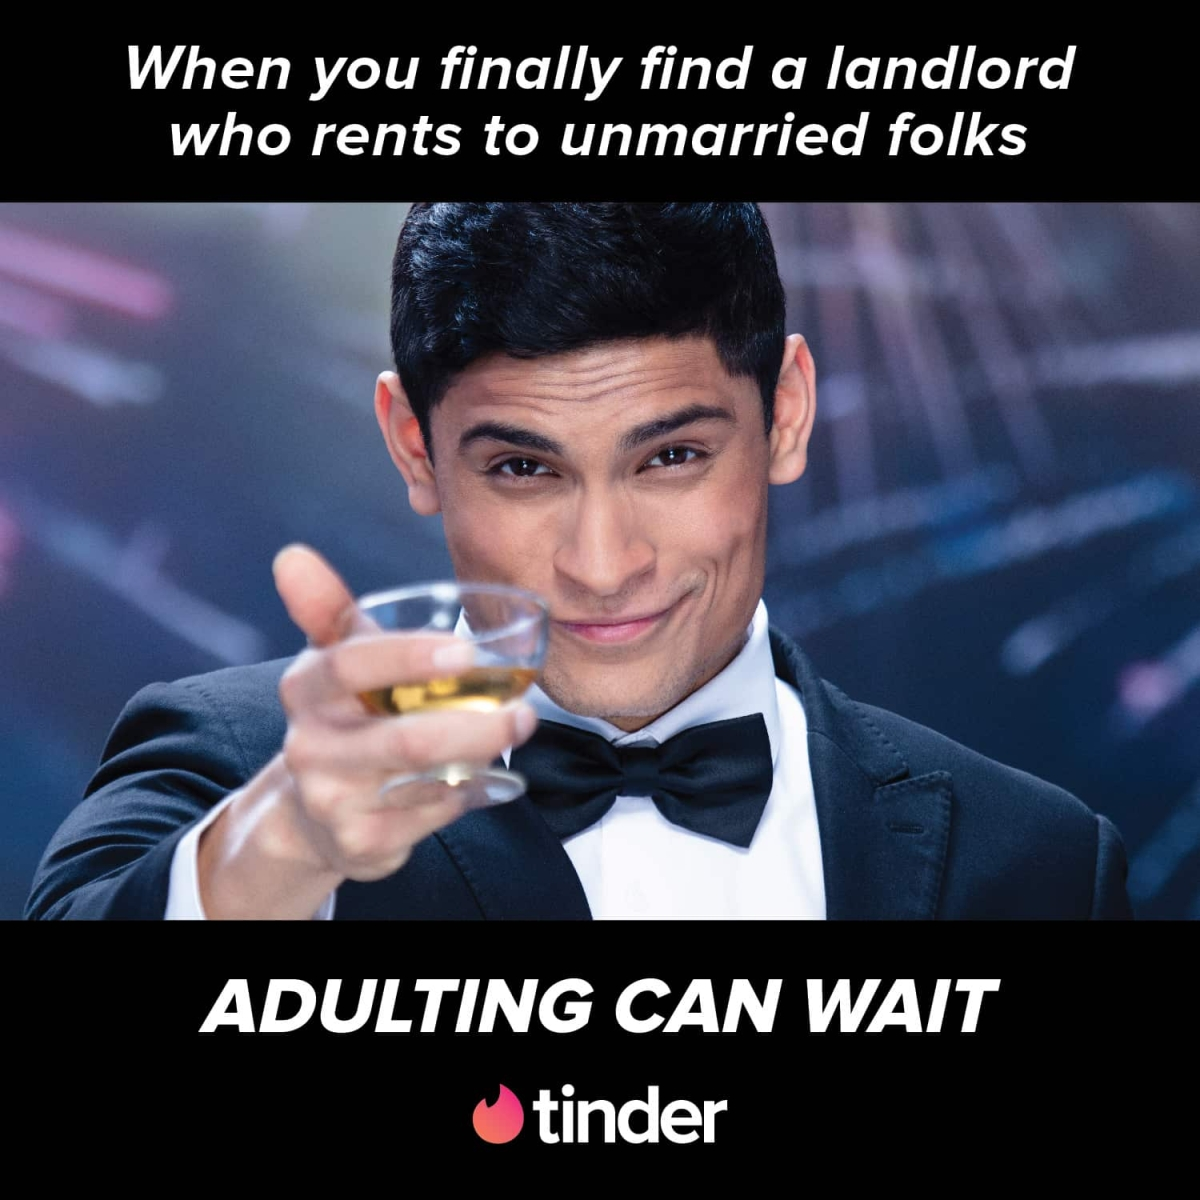 """Adulting can wait"" says Tinder in new ads"